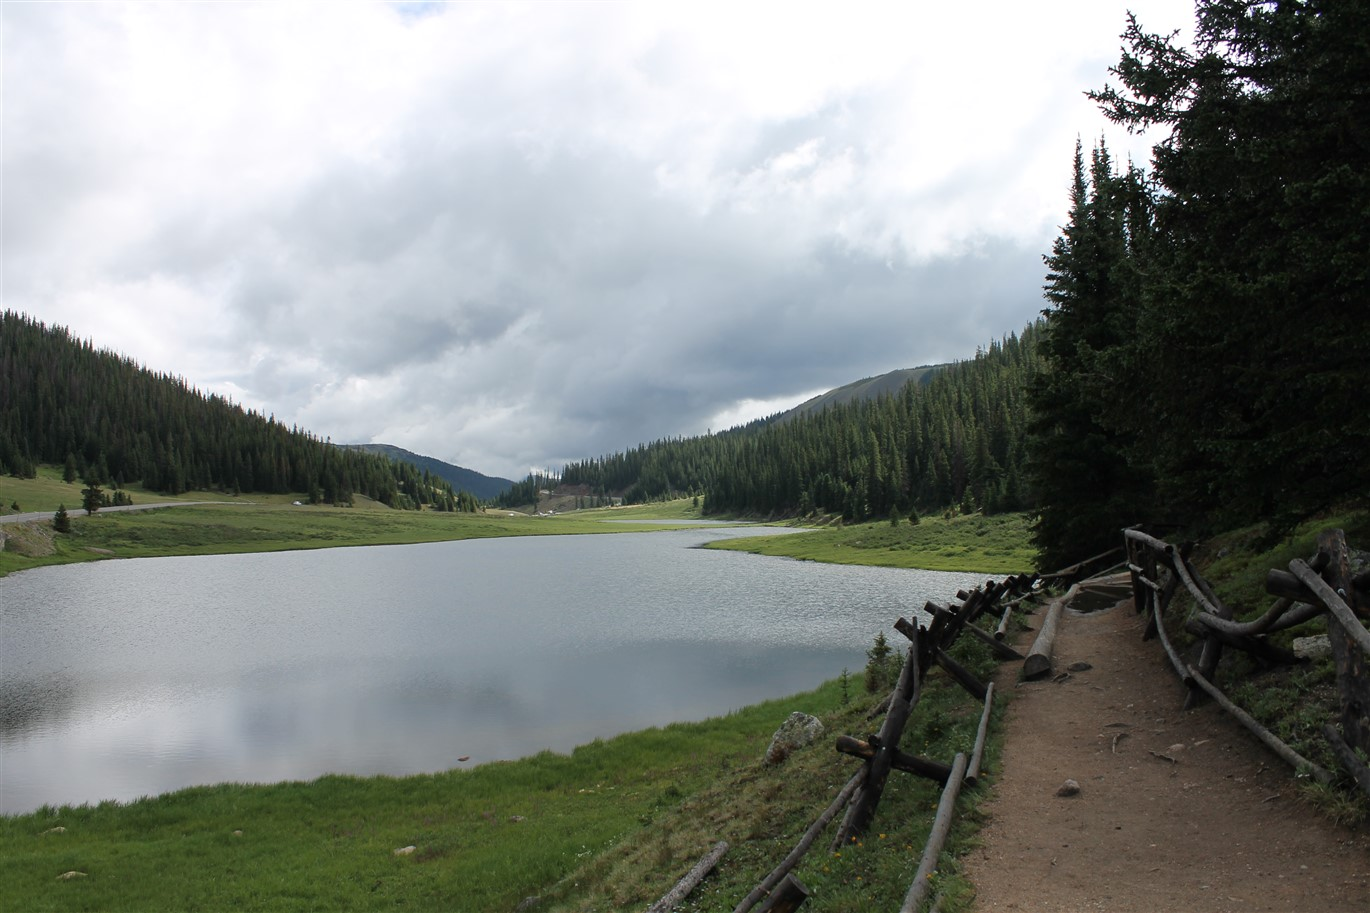 2012 07 08 85 Rocky Mountain National Park.jpg